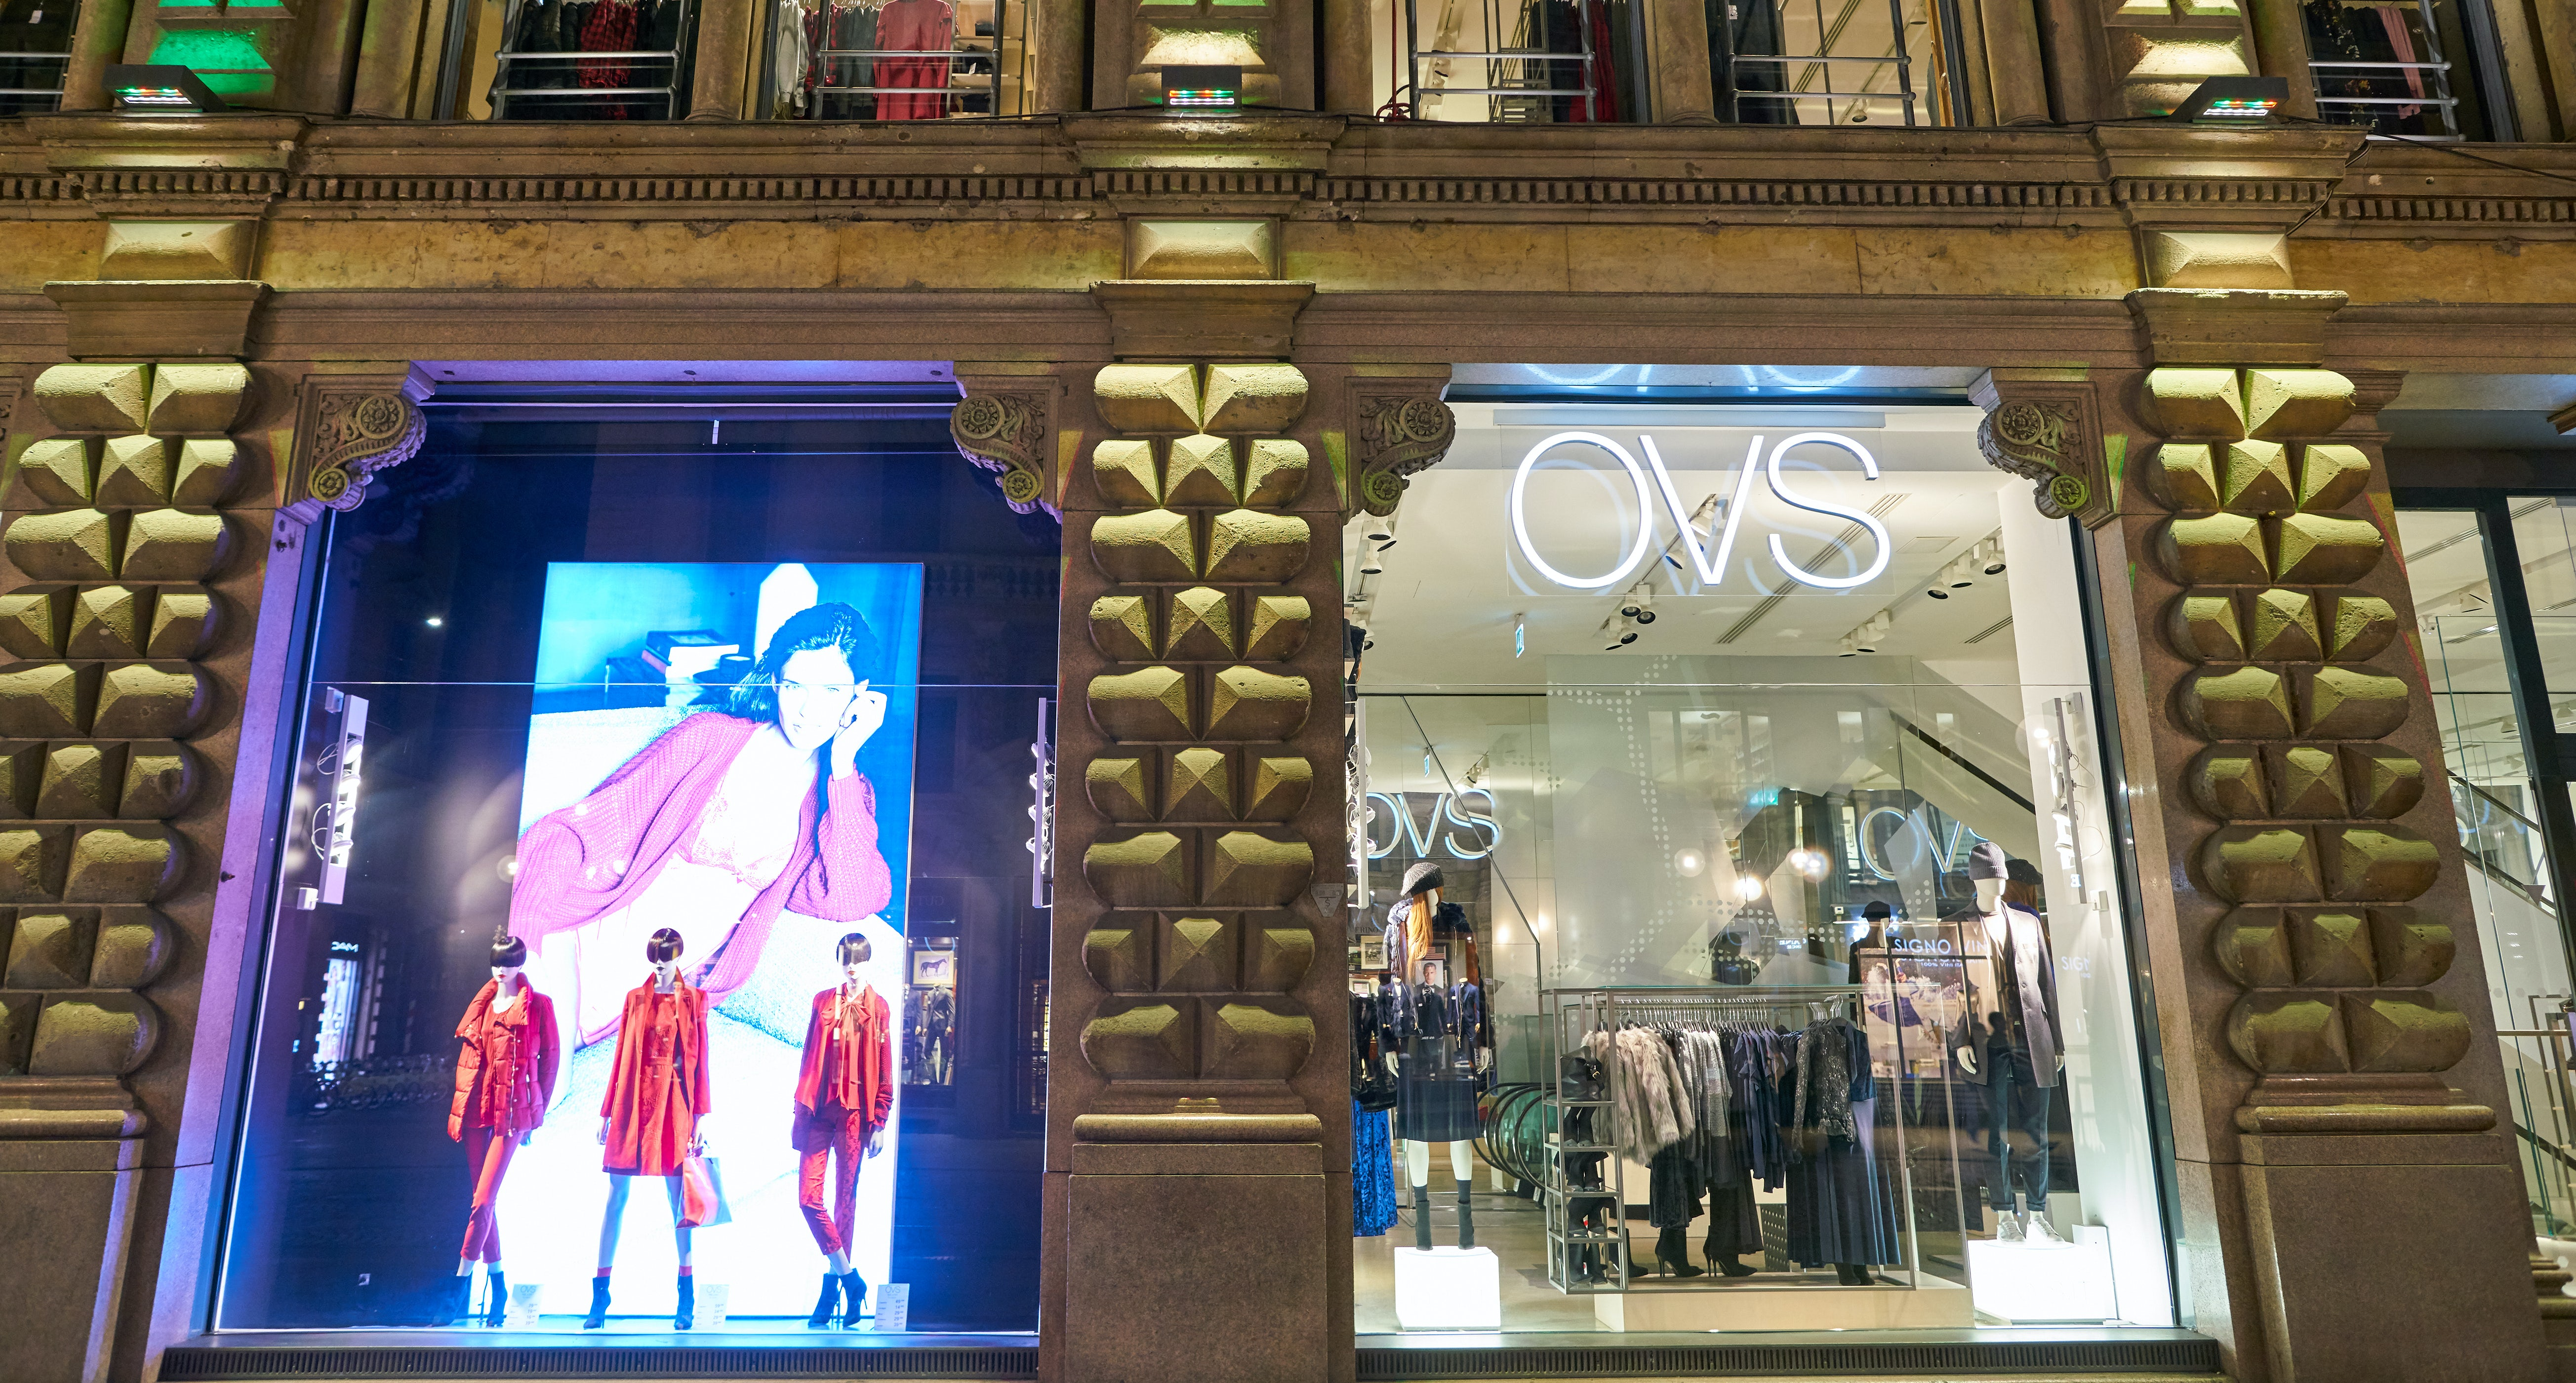 OVS store in Milan, Italy | Source: Shutterstock